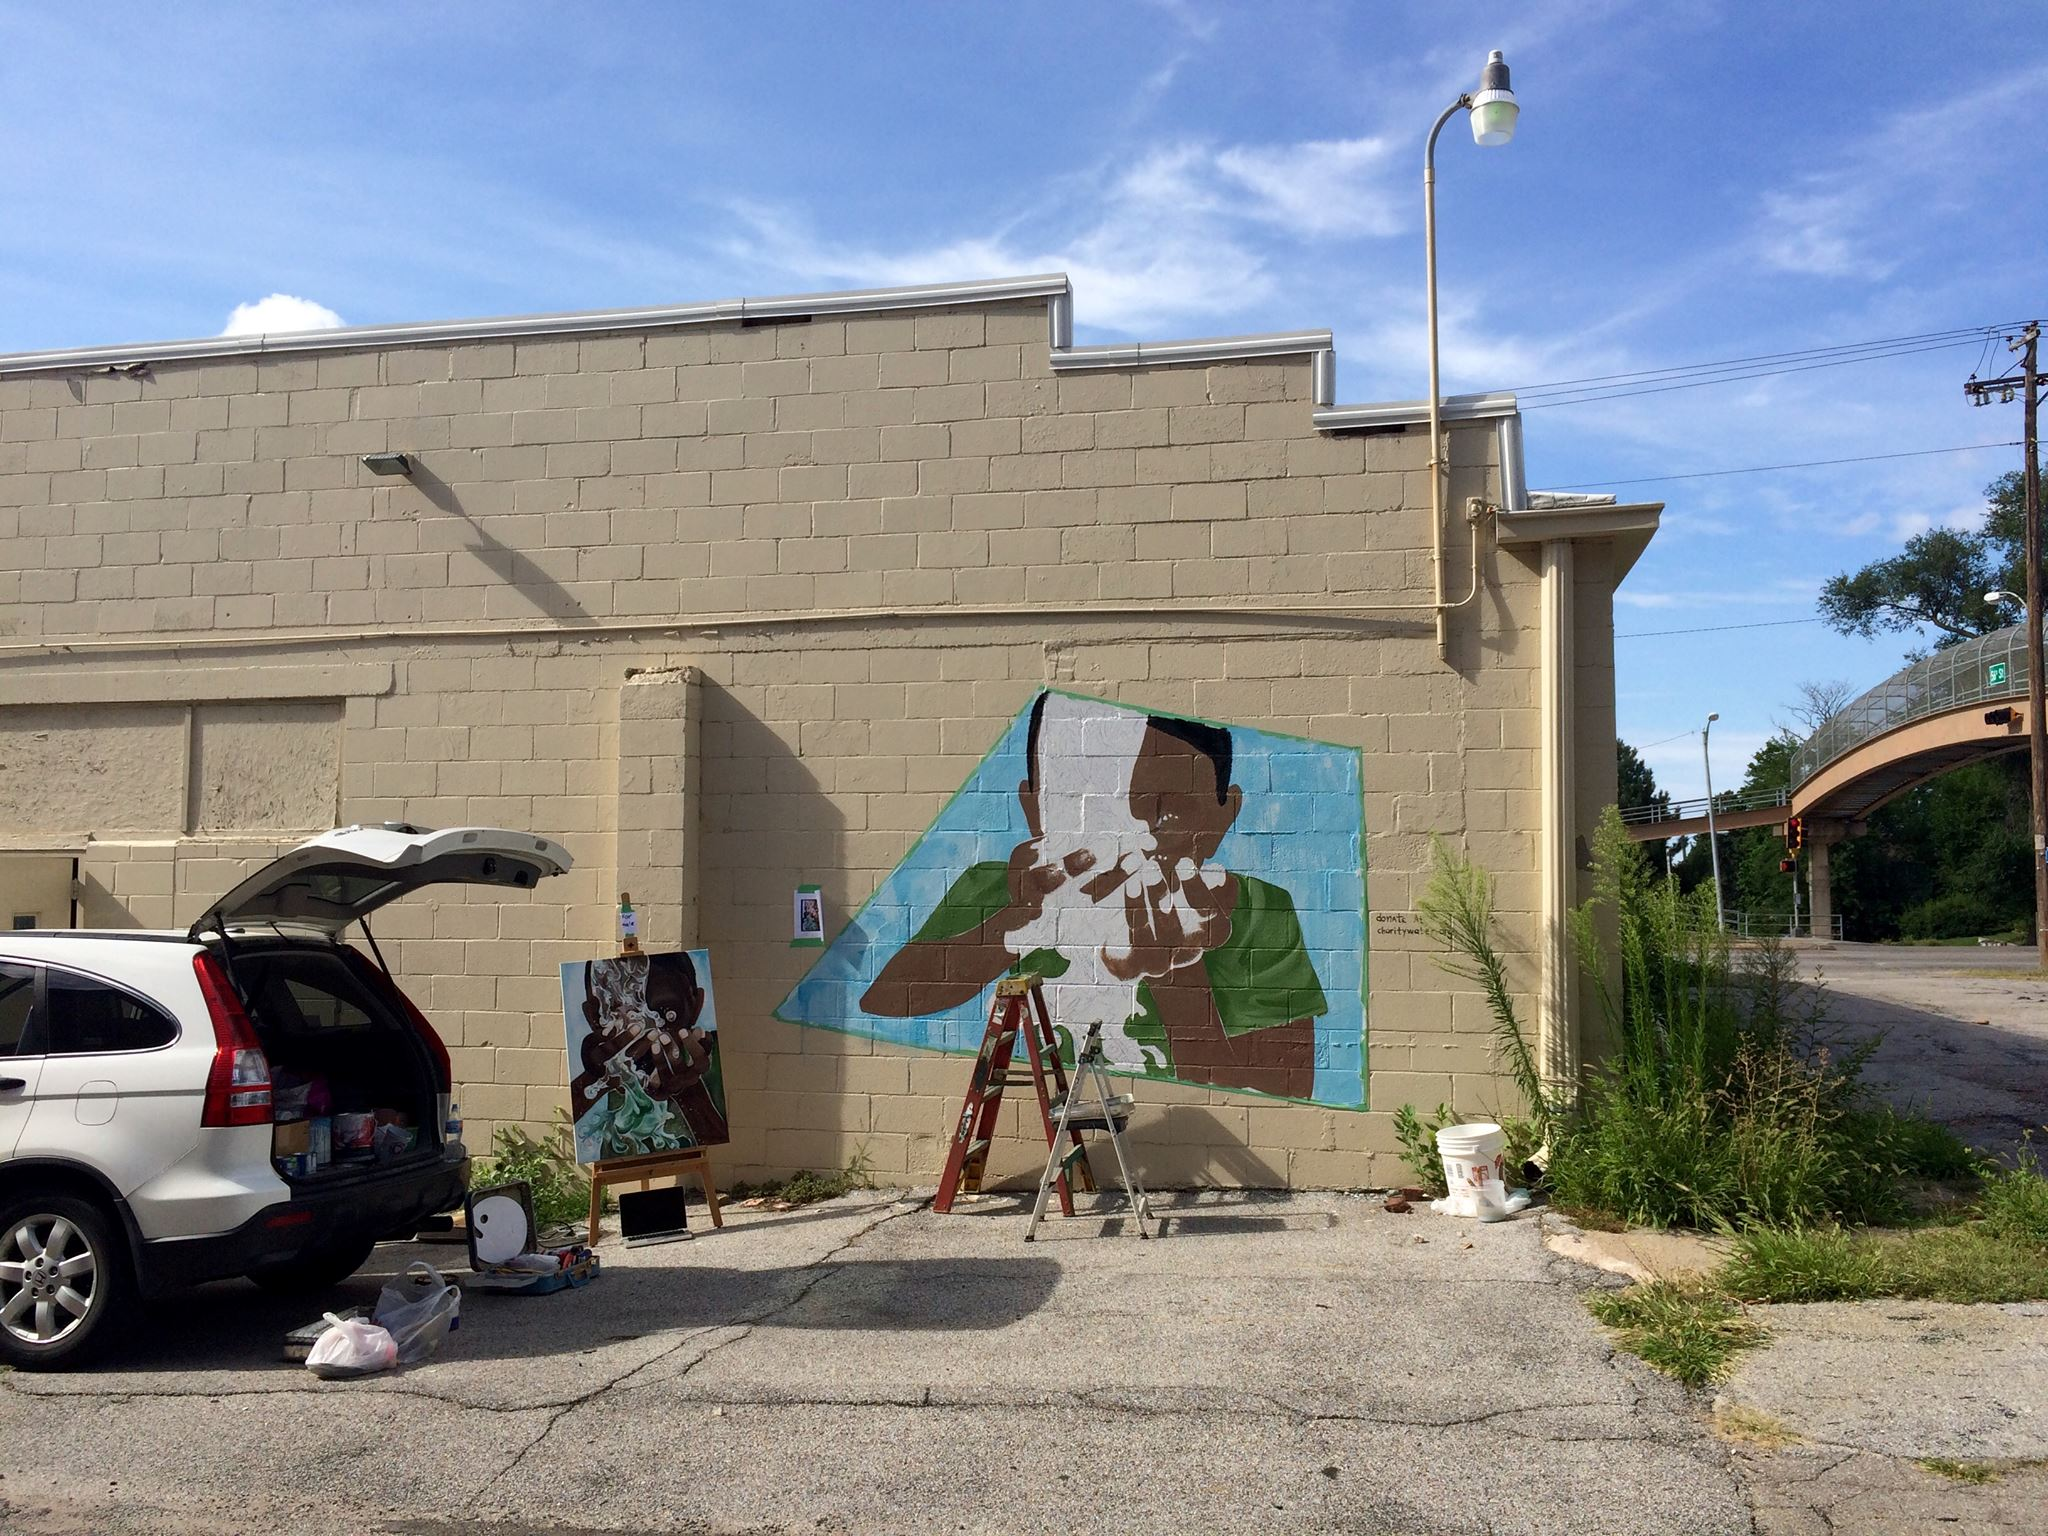 We participated in the BFF Tiny Mural Project. This mural created was created by local artist Sarah Craw (SCraw Art) on the south wall.